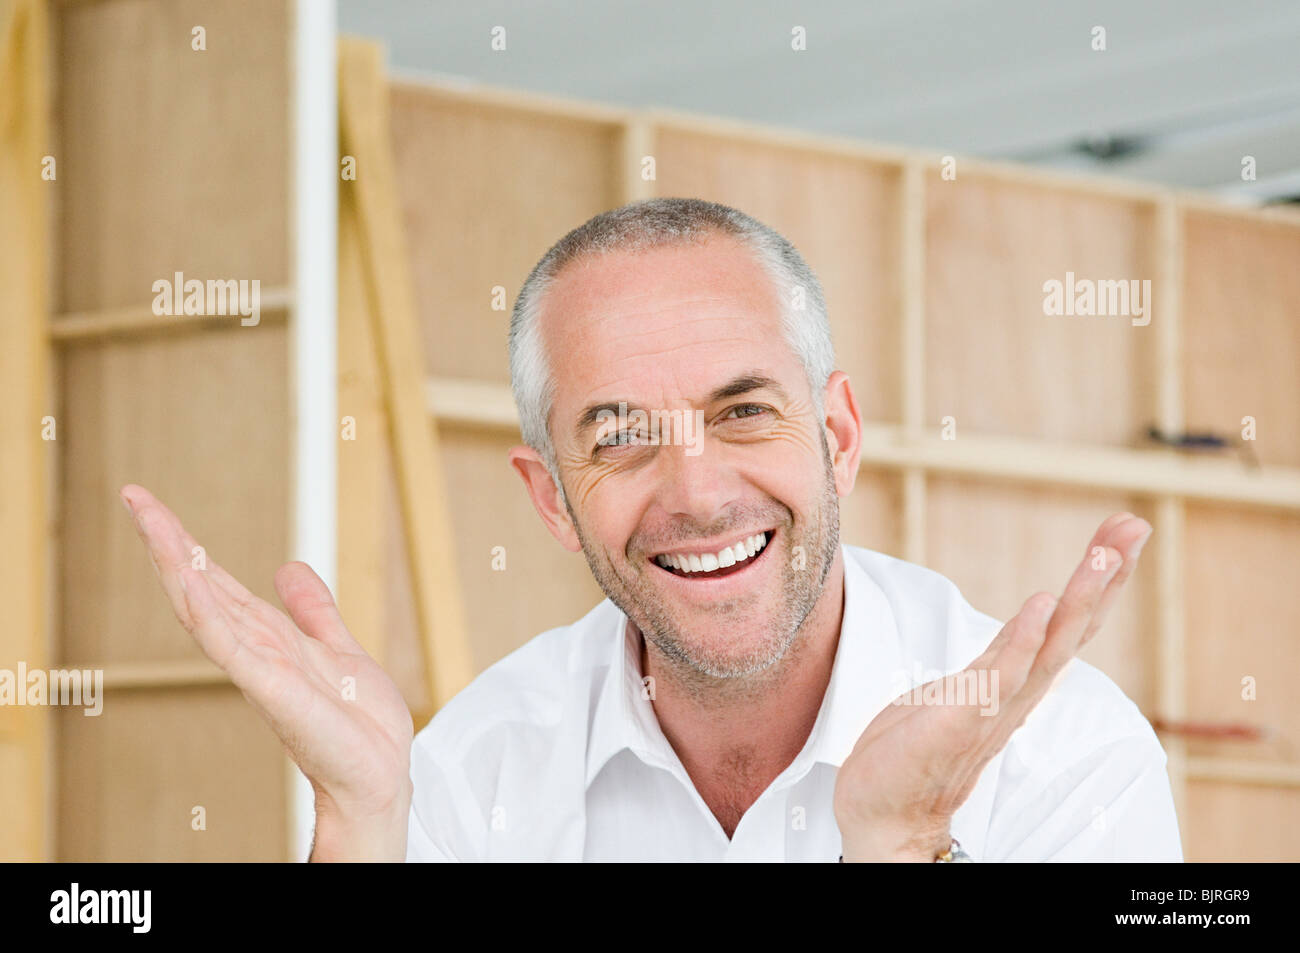 Enthusiastic man - Stock Image